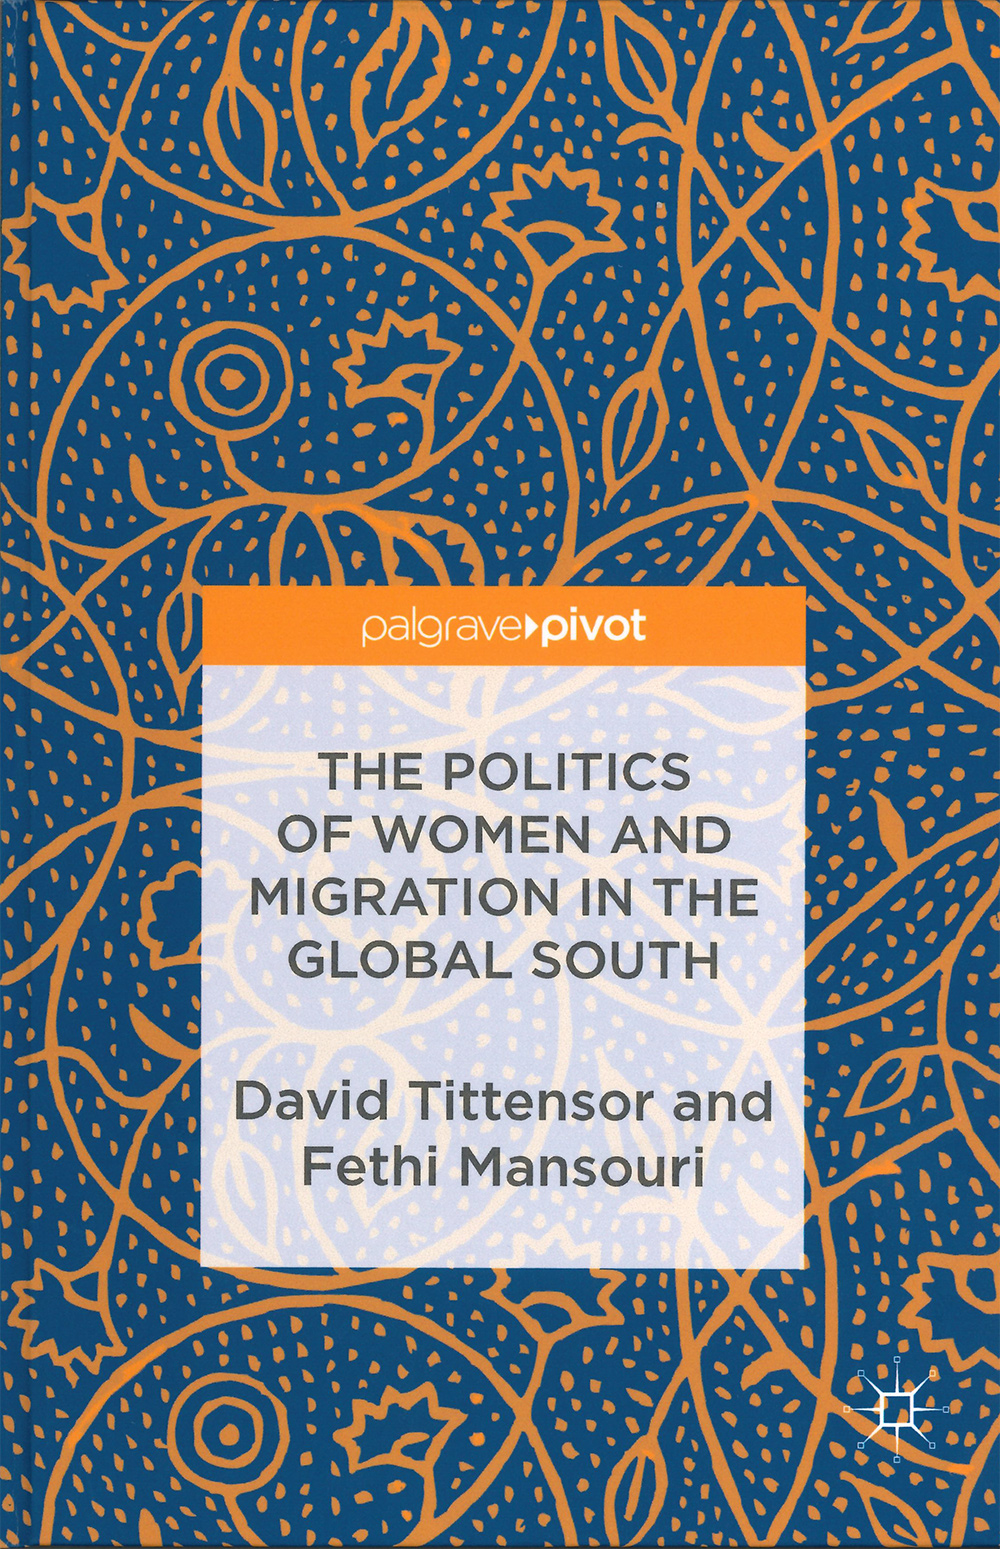 Tittensor, D,Mansouri, F (eds.) (2017) - 'Women and Migration in the Global South',Palgrave MacMillan, London.